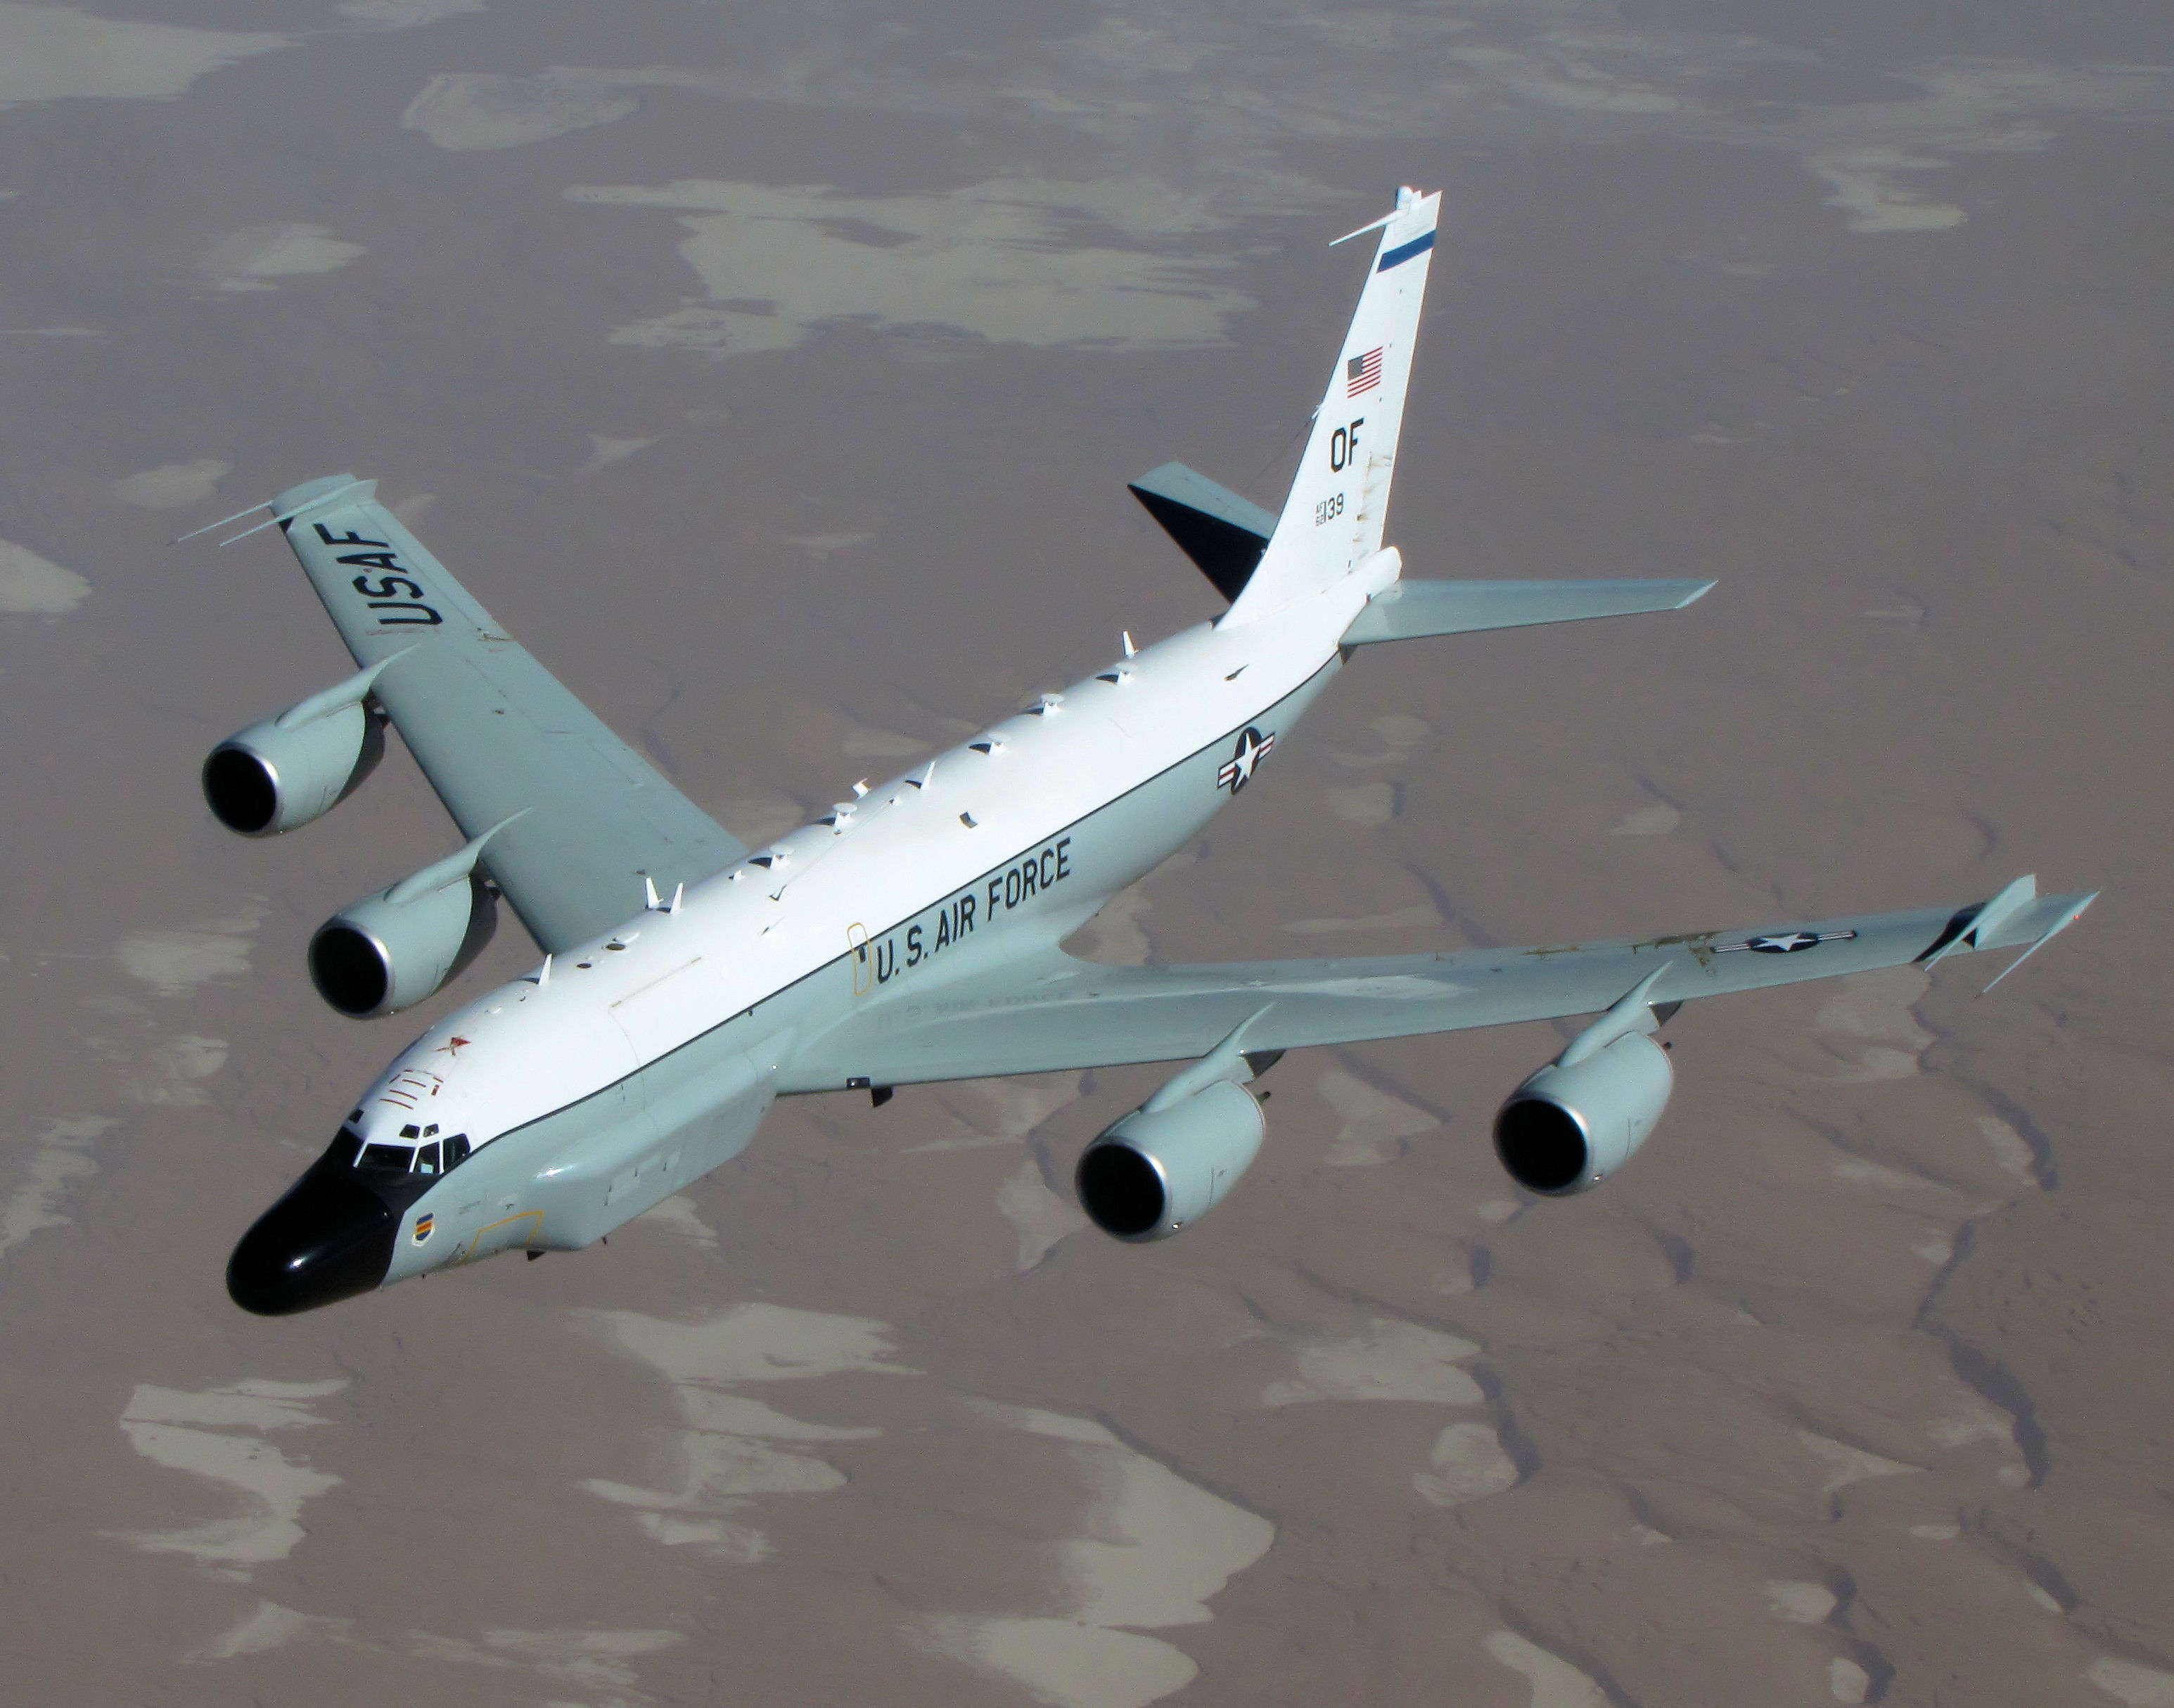 RC-135 Avoids Russian Jet, Flies To Sweden